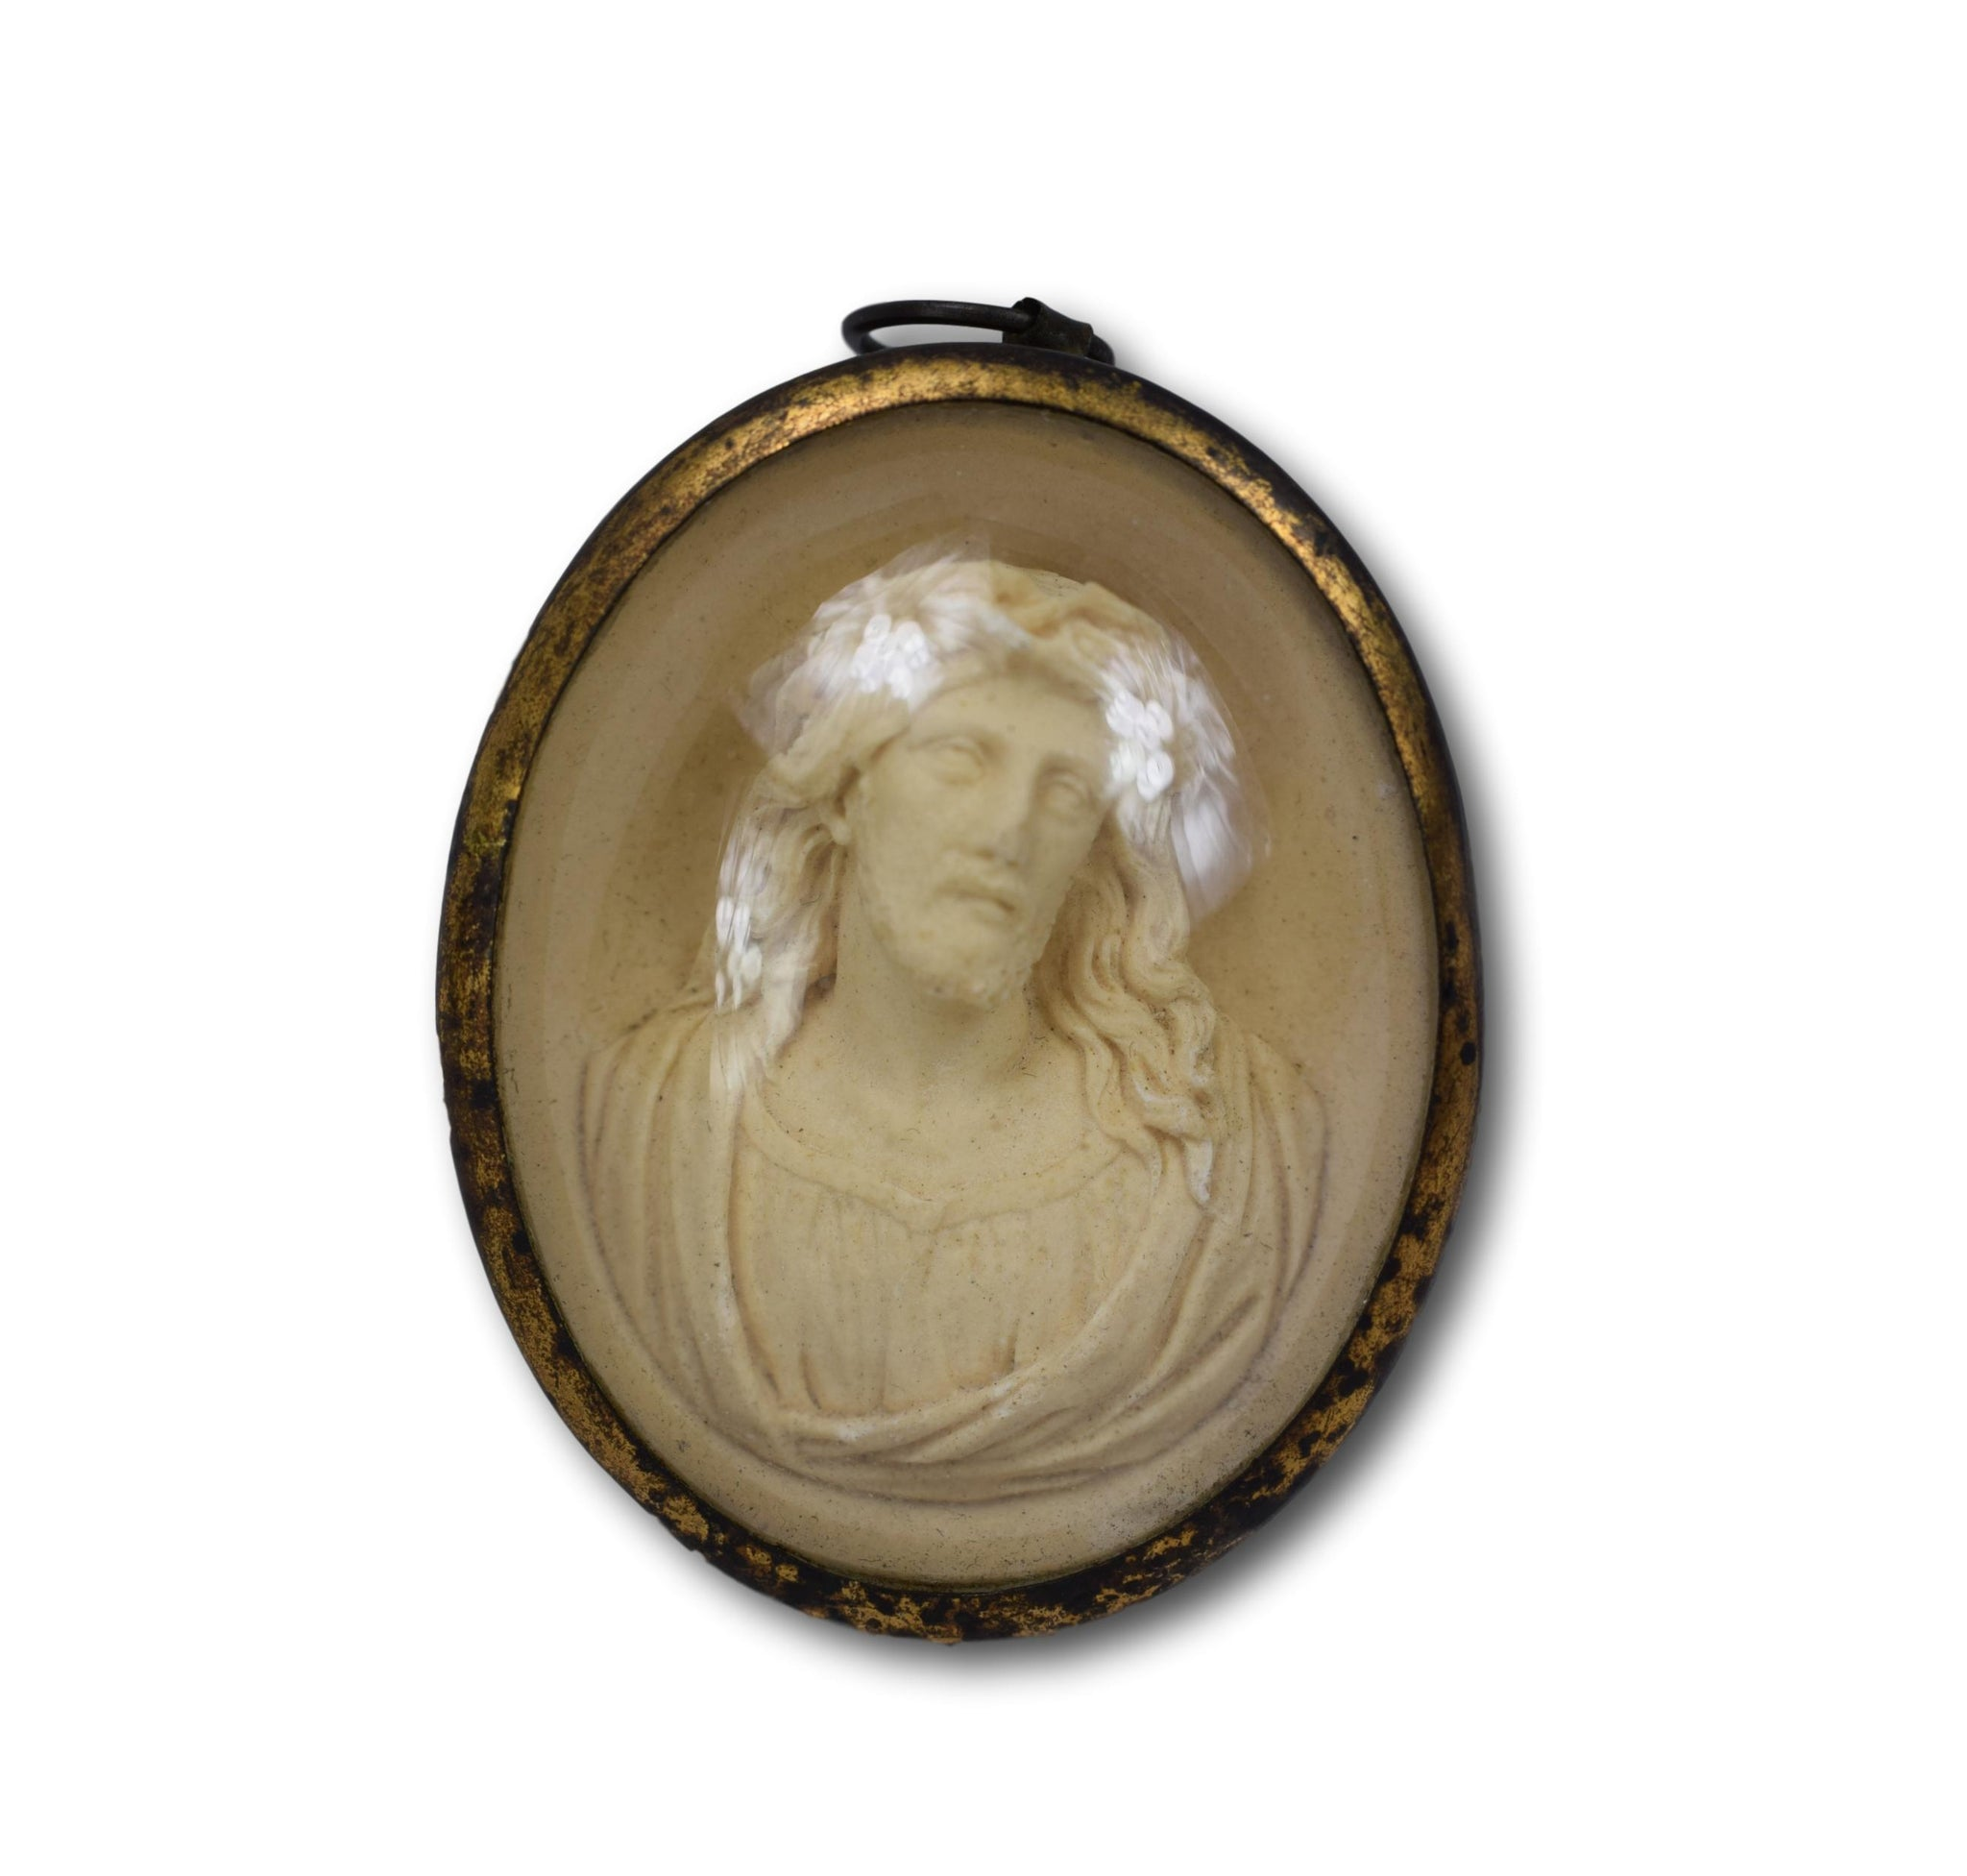 Jesus Antique Medallion - Charmantiques